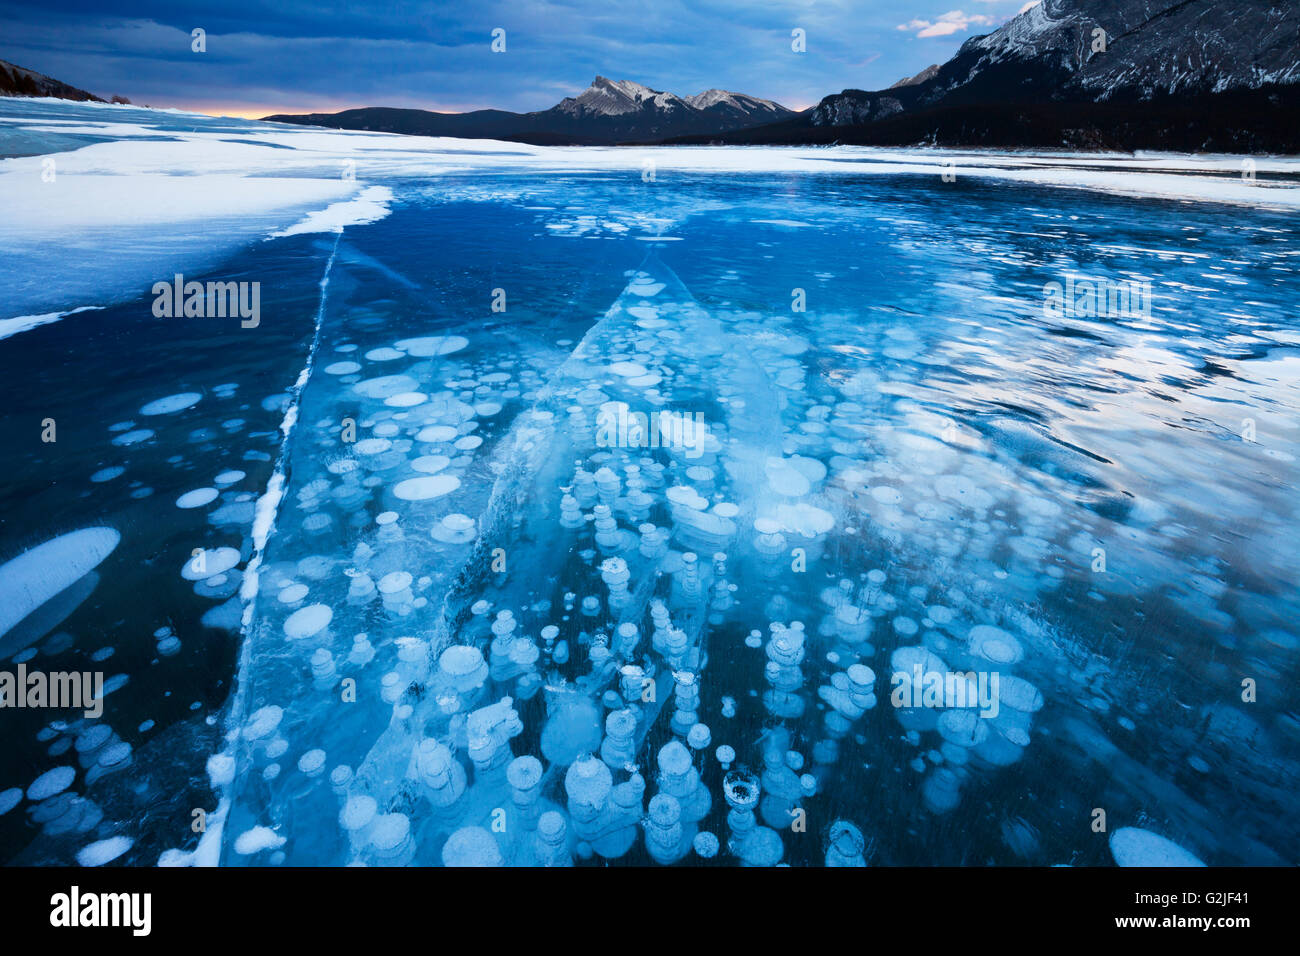 The bubbles are formed by methane gas rising from the bottom of the lake as the lake freezes. - Stock Image